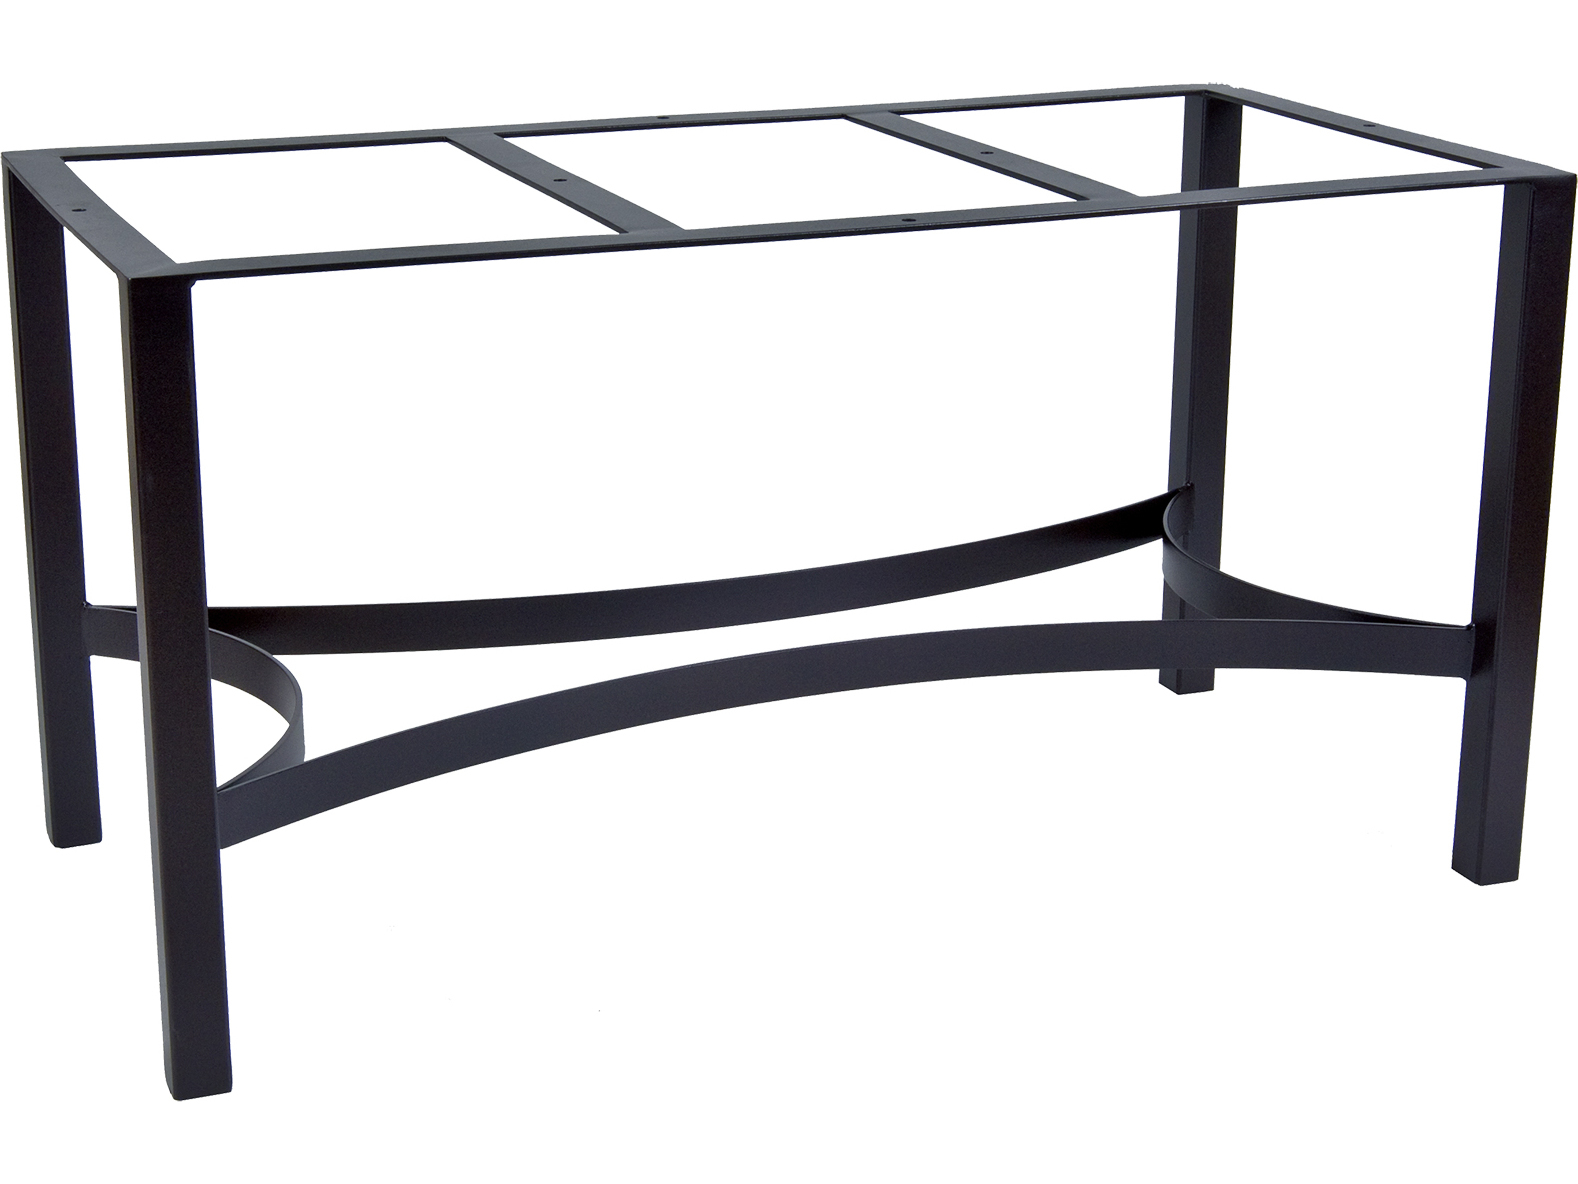 Ow lee palazzo wrought iron dining table rectangular base for Outdoor table bases wrought iron